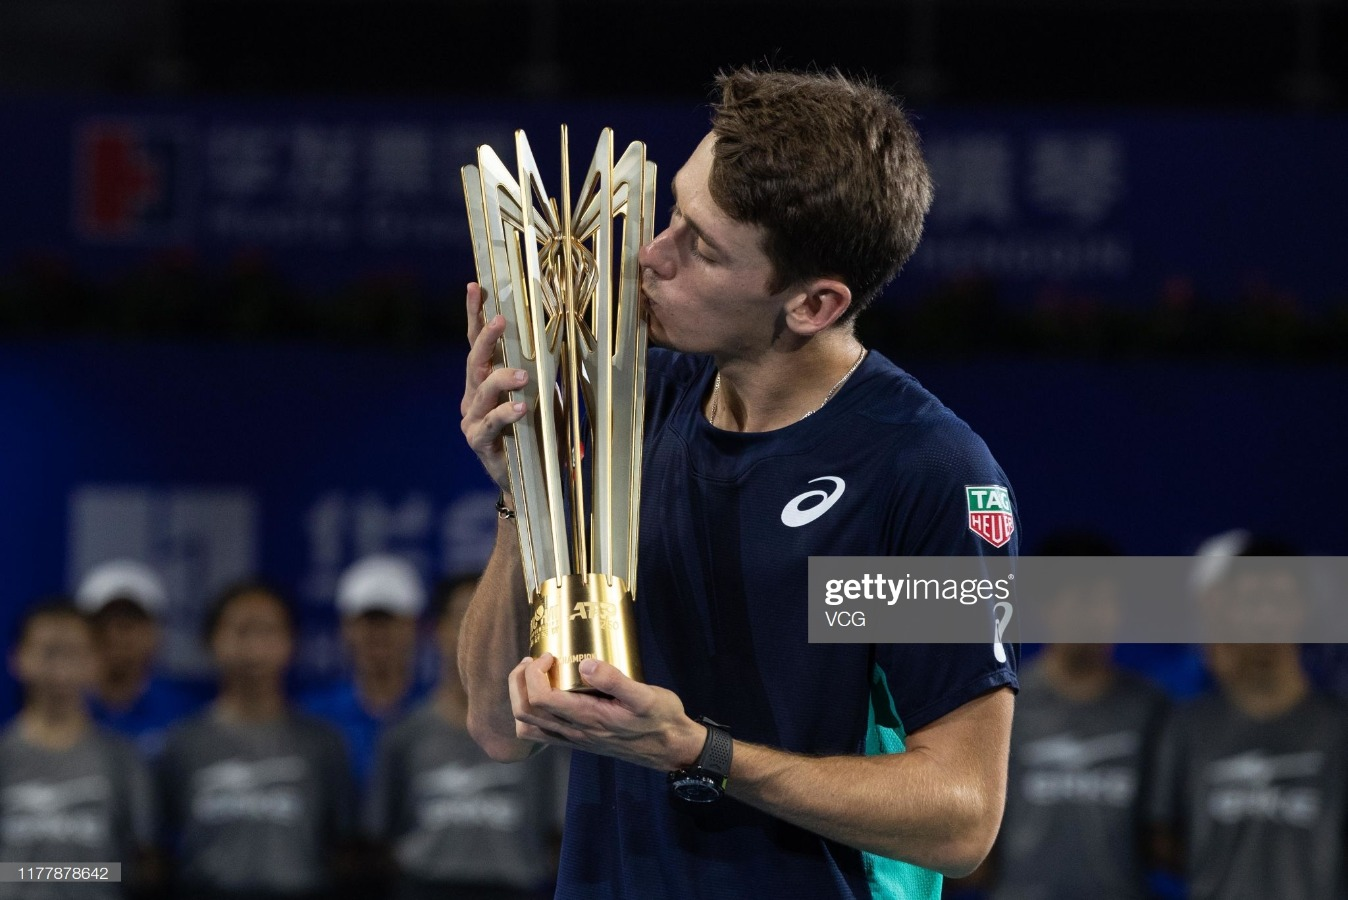 2019 ATP World Tour 250 Zhuhai Championships - Day 7 : News Photo